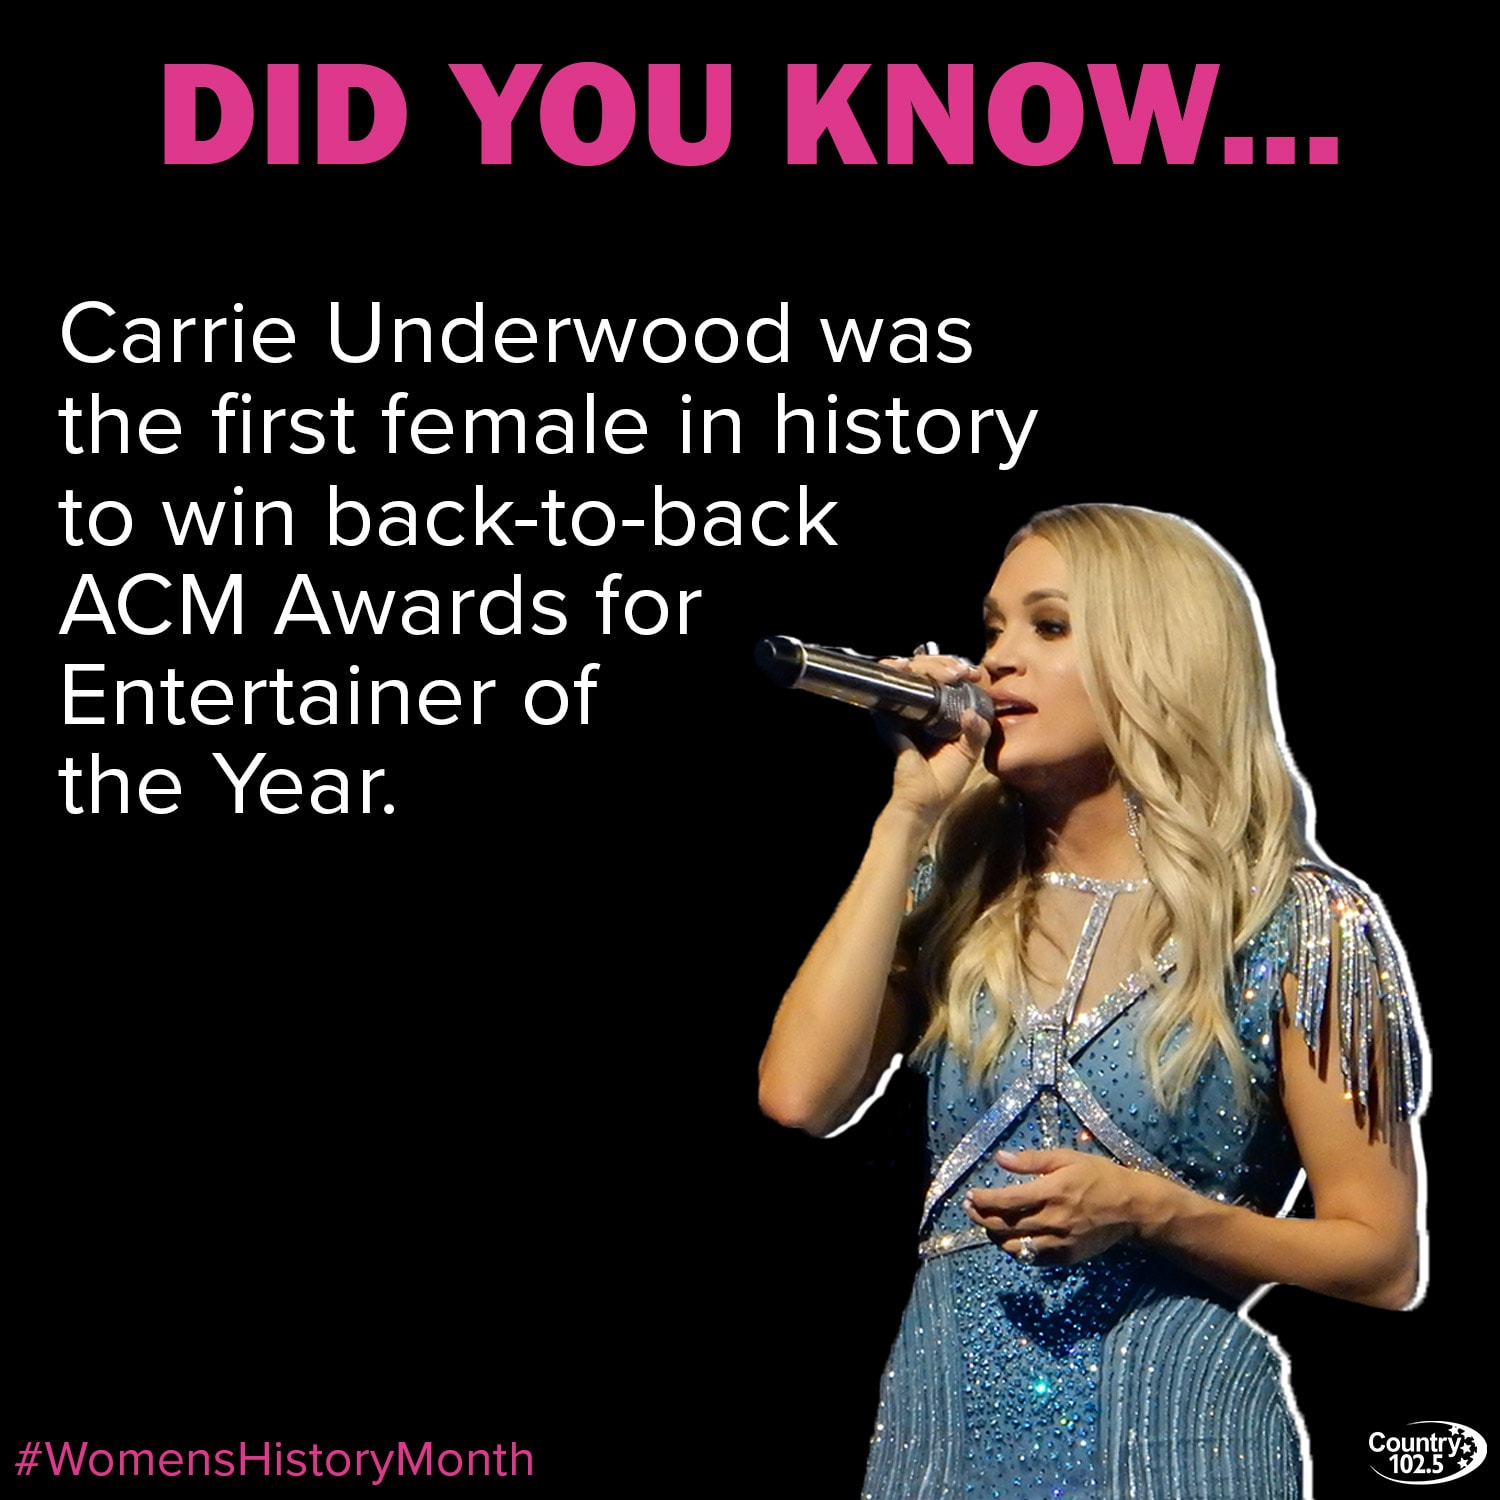 Carrie Underwood Fact